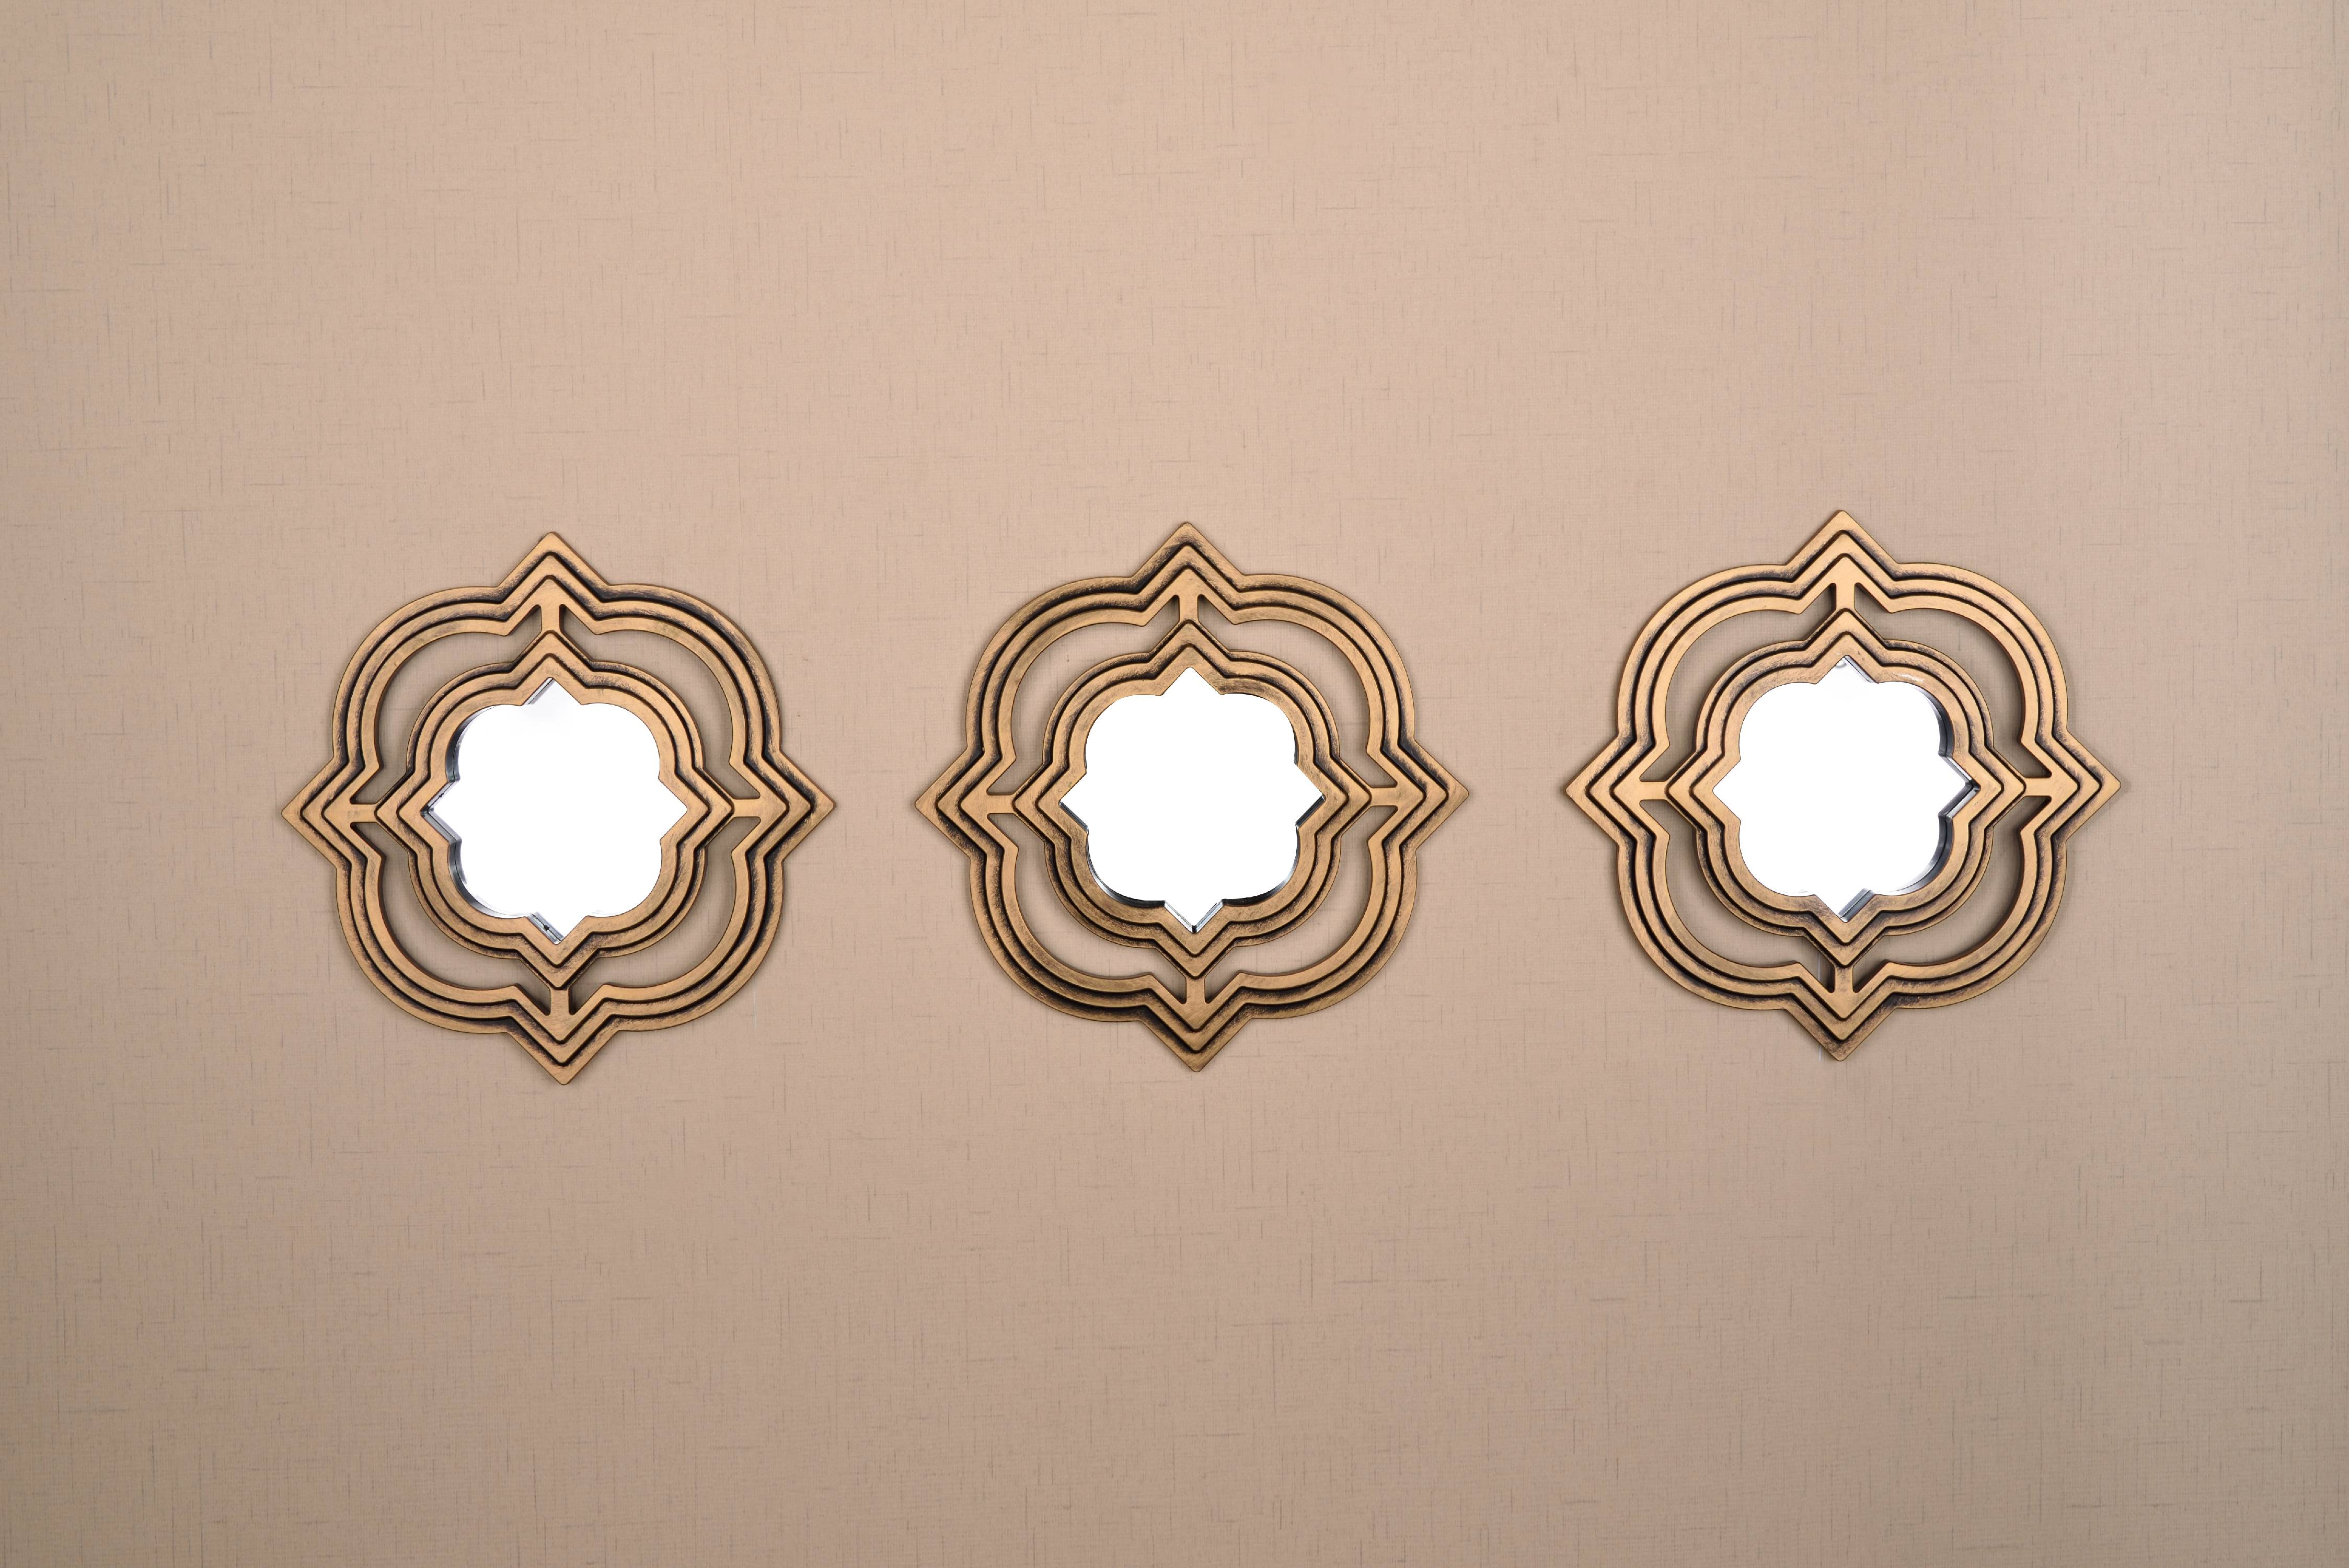 All American Collection New 3 Piece Decorative Mirror Set, Wall Accent Display by American Linen & Rugs